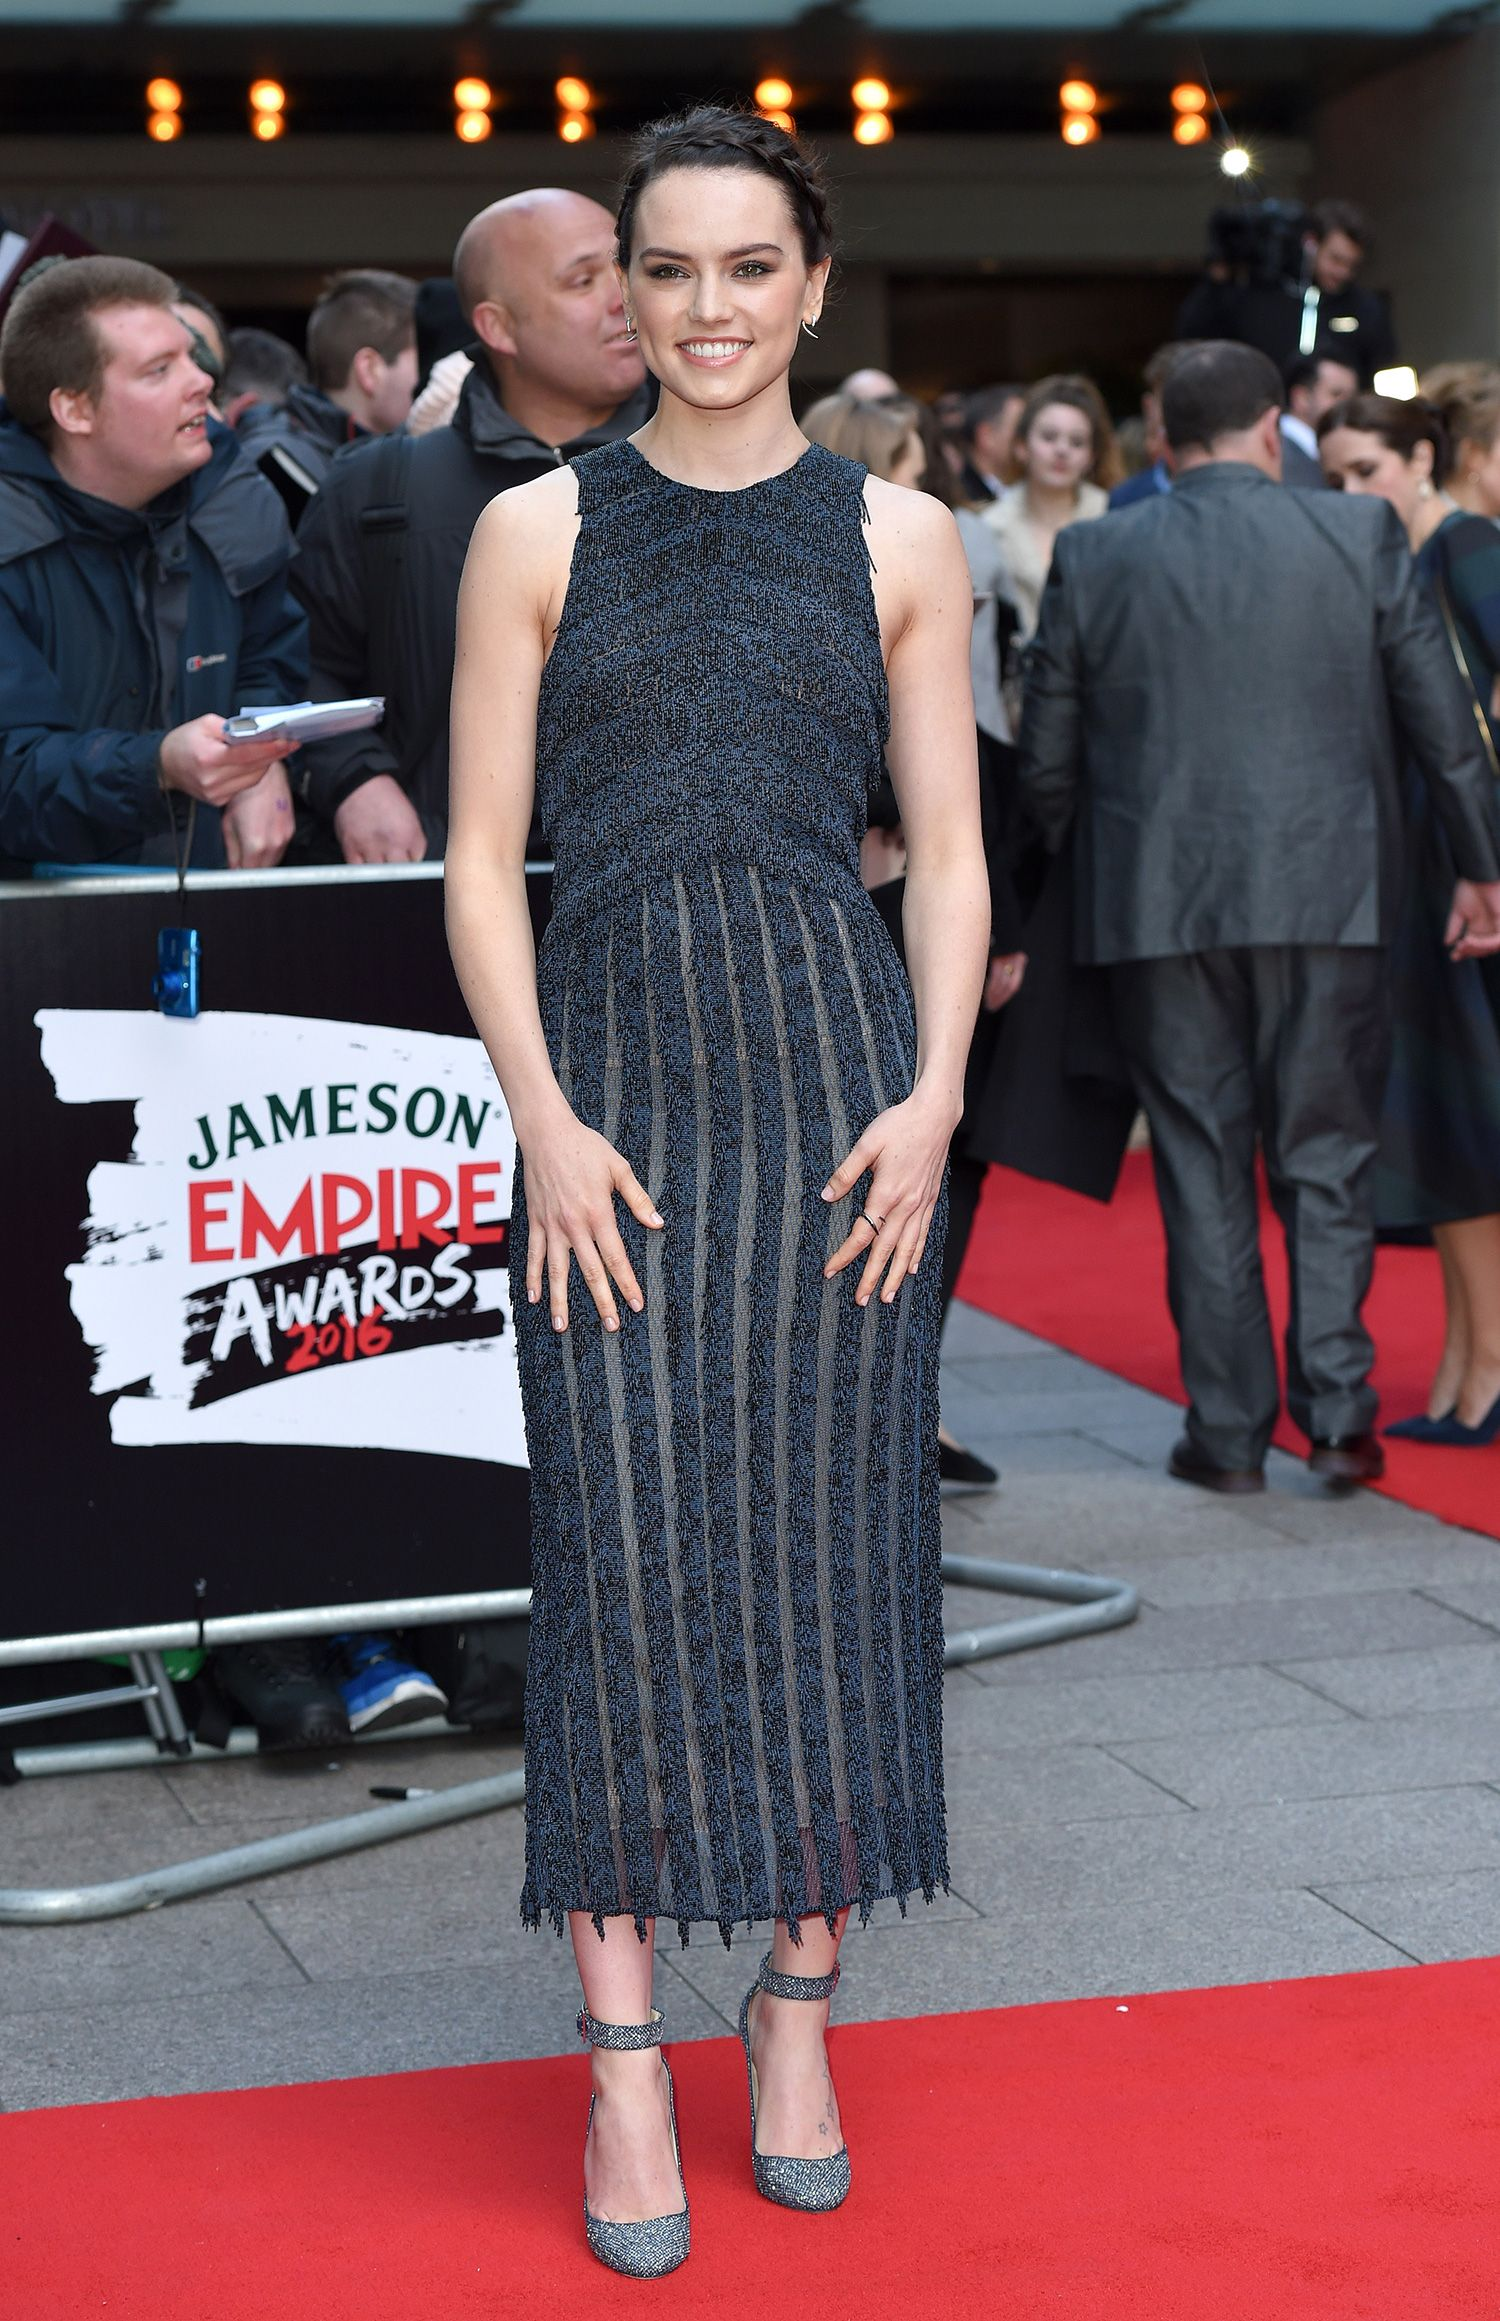 Daisy Ridley in Boss Spring 2016 at 2015 Jameson Empire Awards